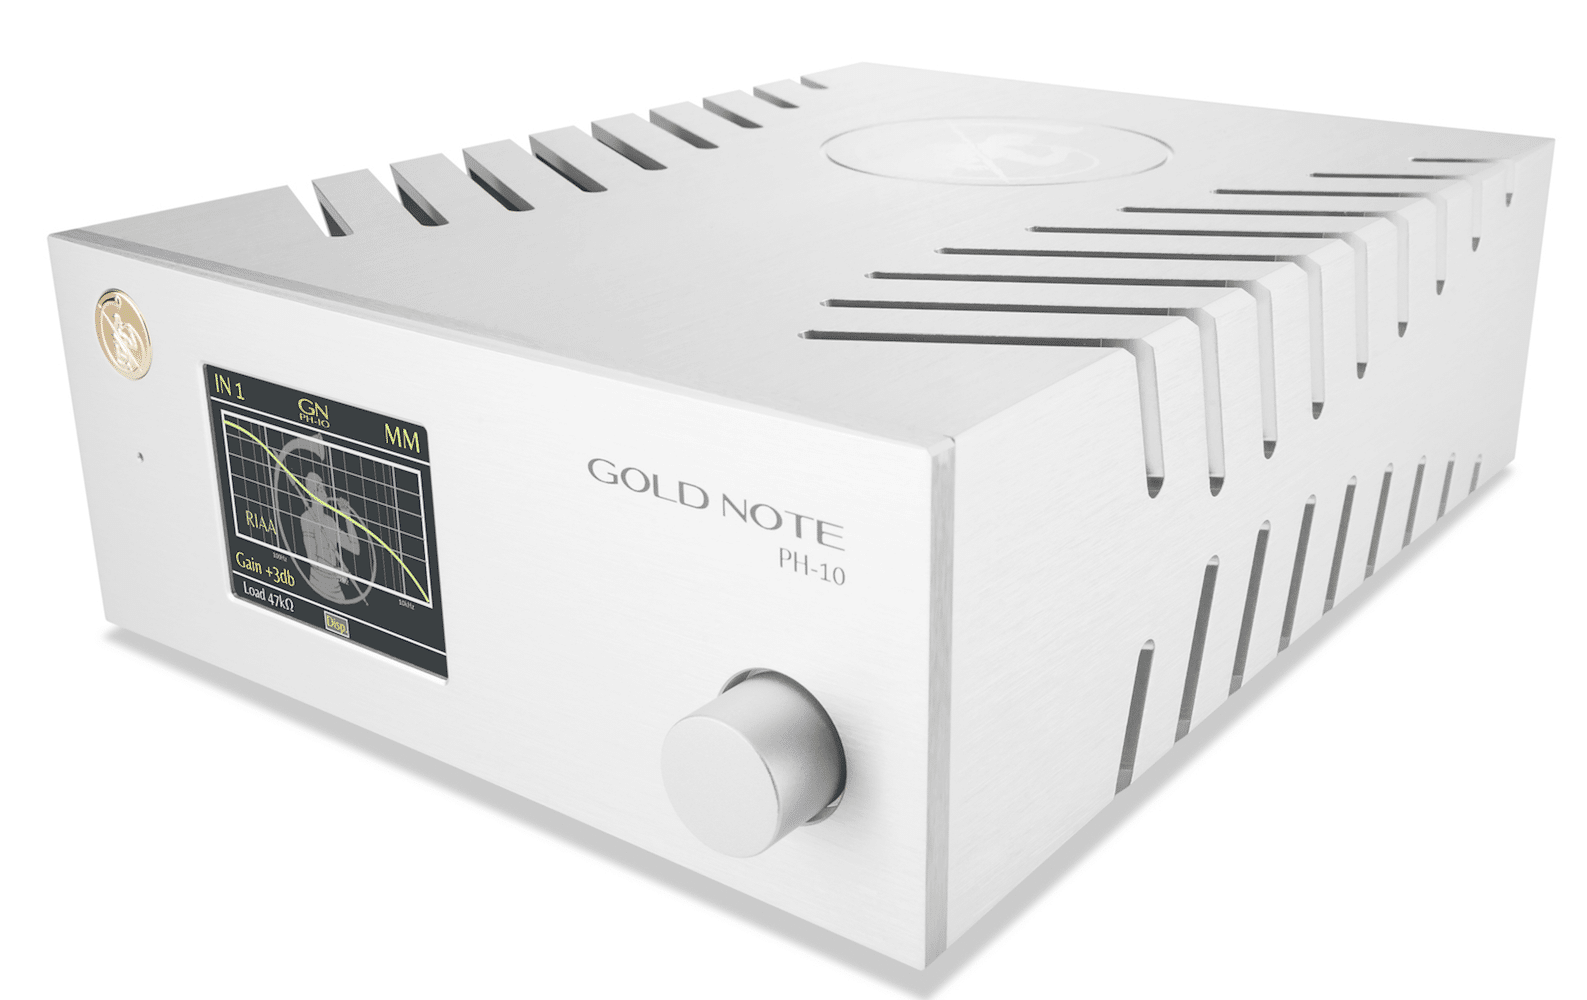 PH-10 Phono Amplifier from Gold Note